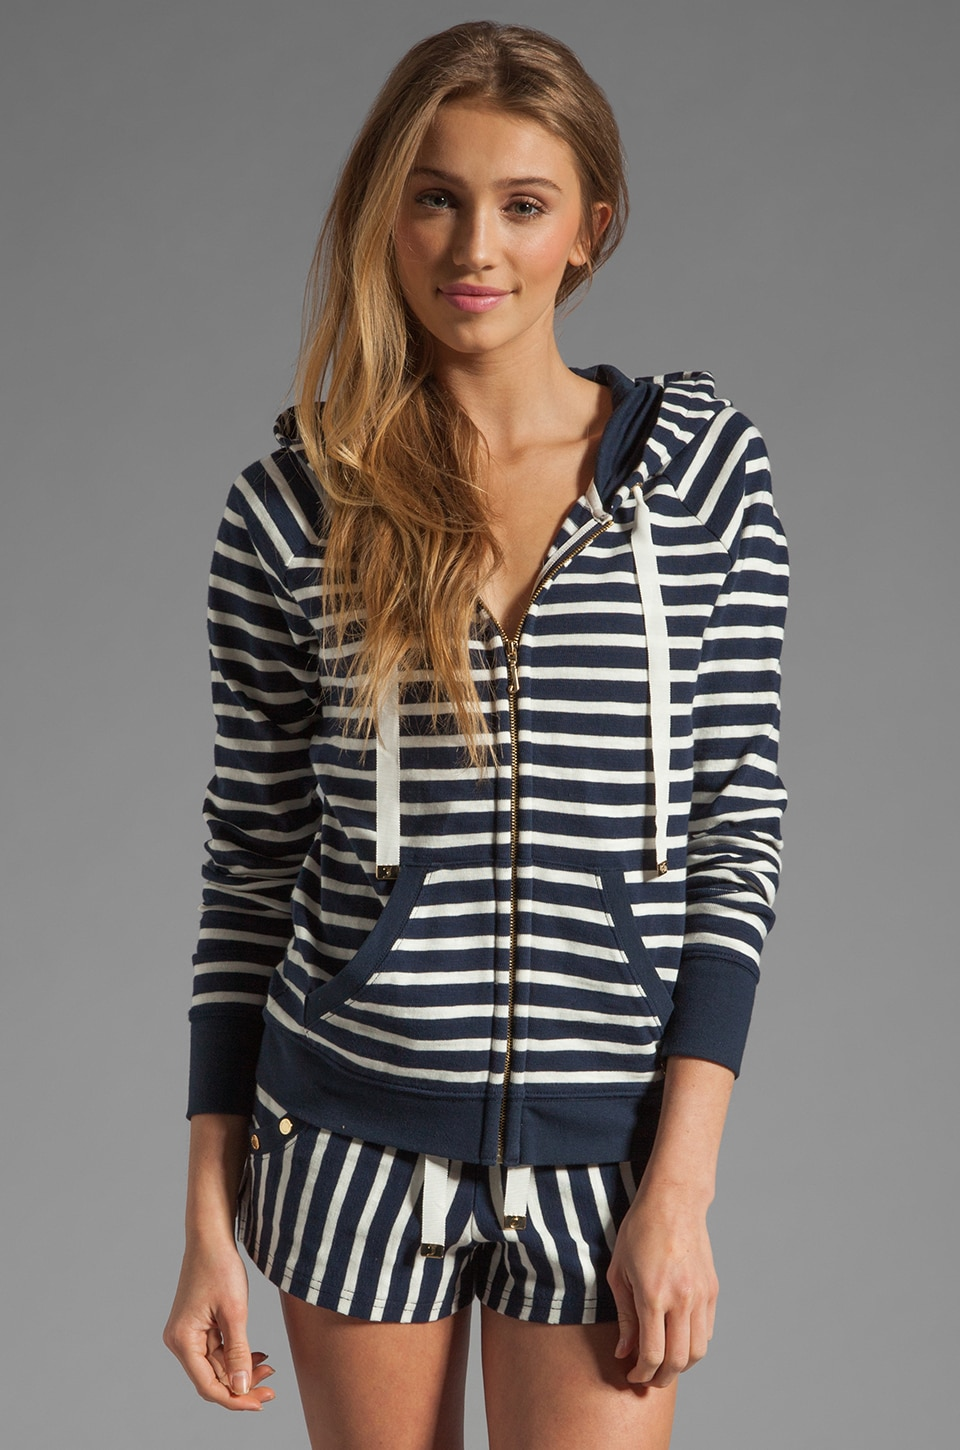 Juicy Couture Harbor Stripe Hoodie in Regal Stripe